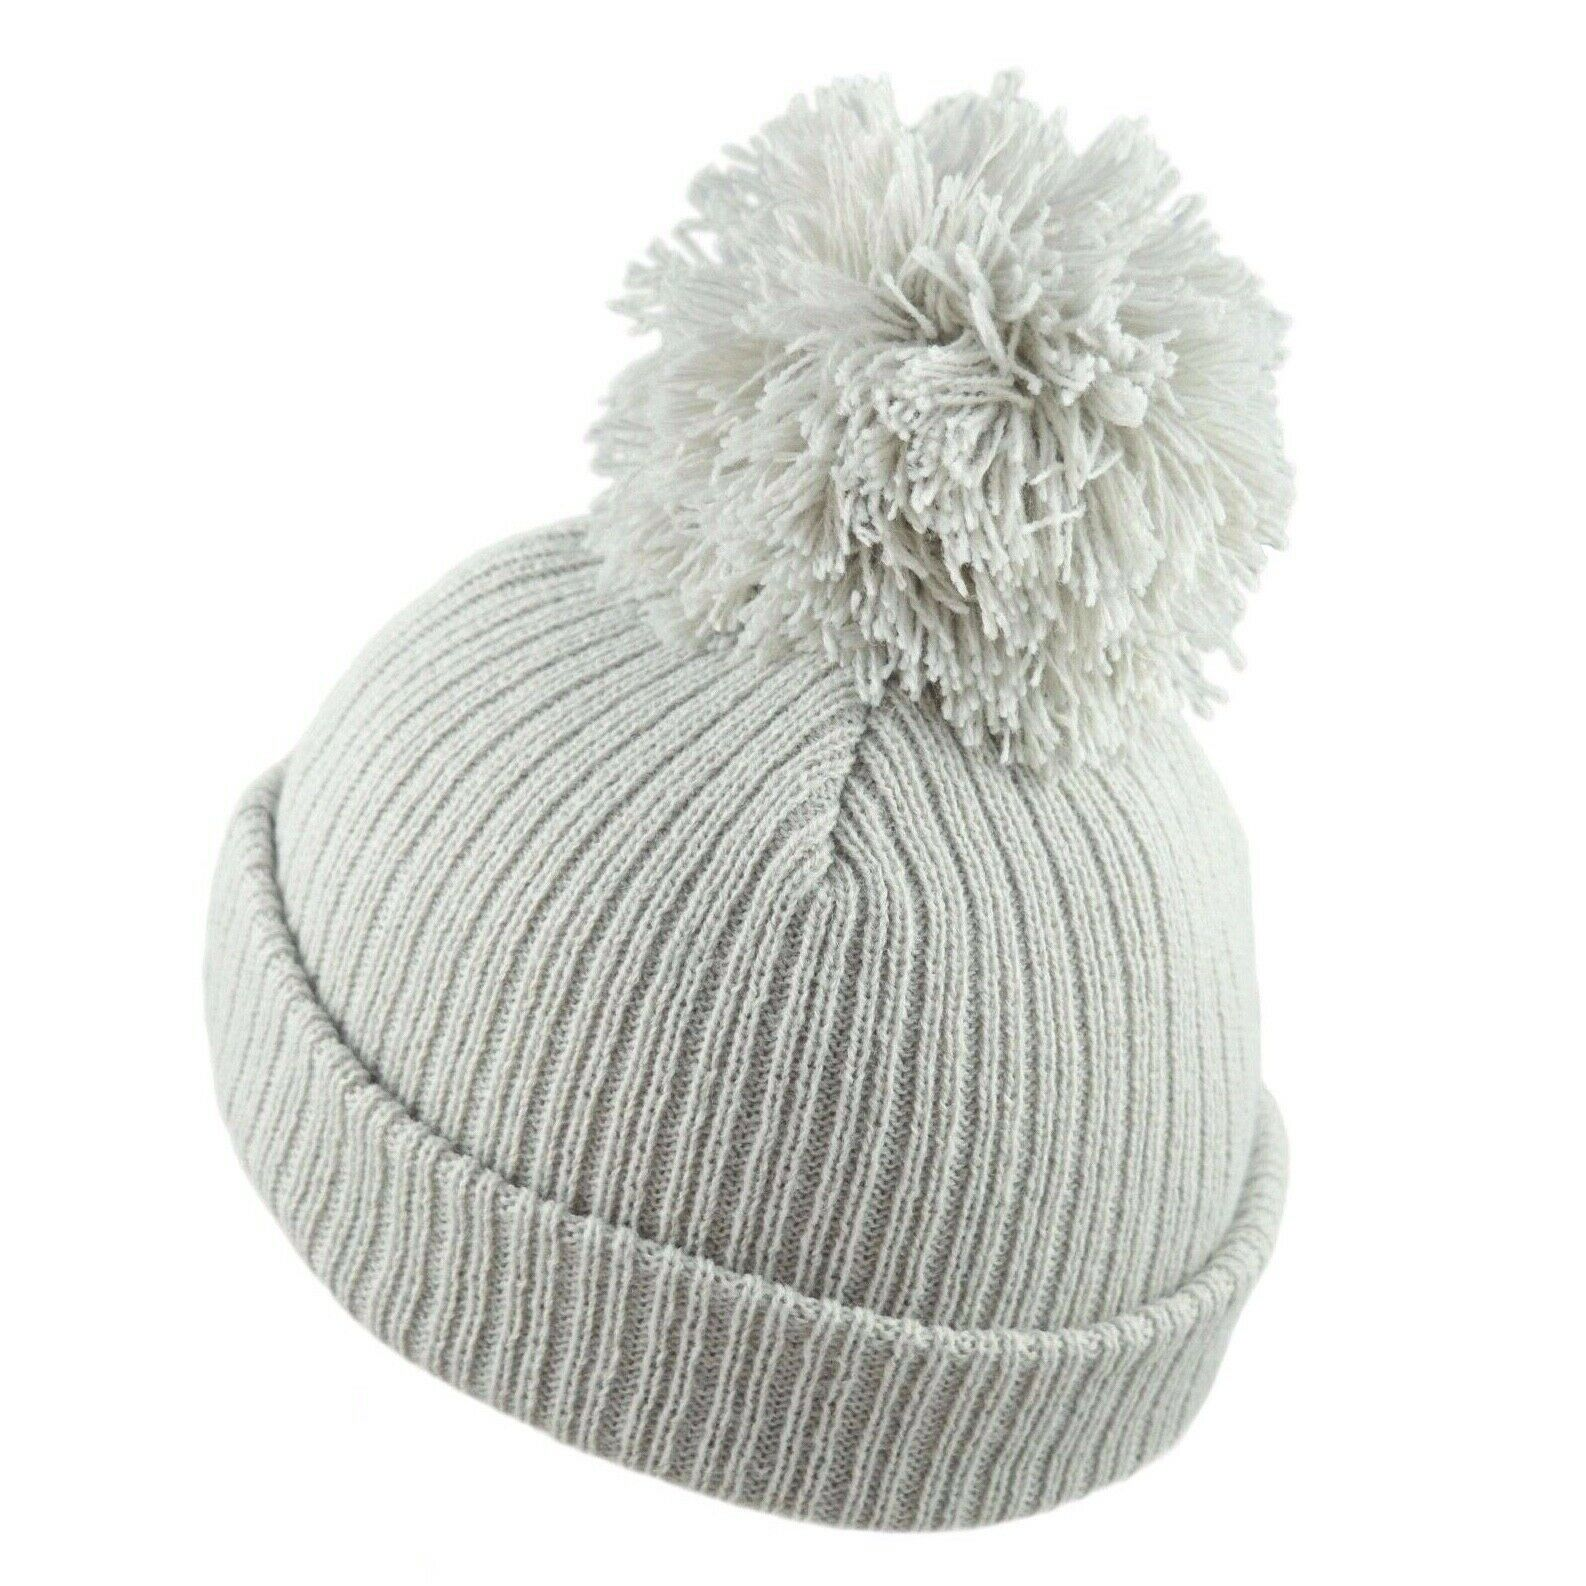 Pesci Baby Boys Girls Knitted Bobble Hat Striped Plain with Chin Tie